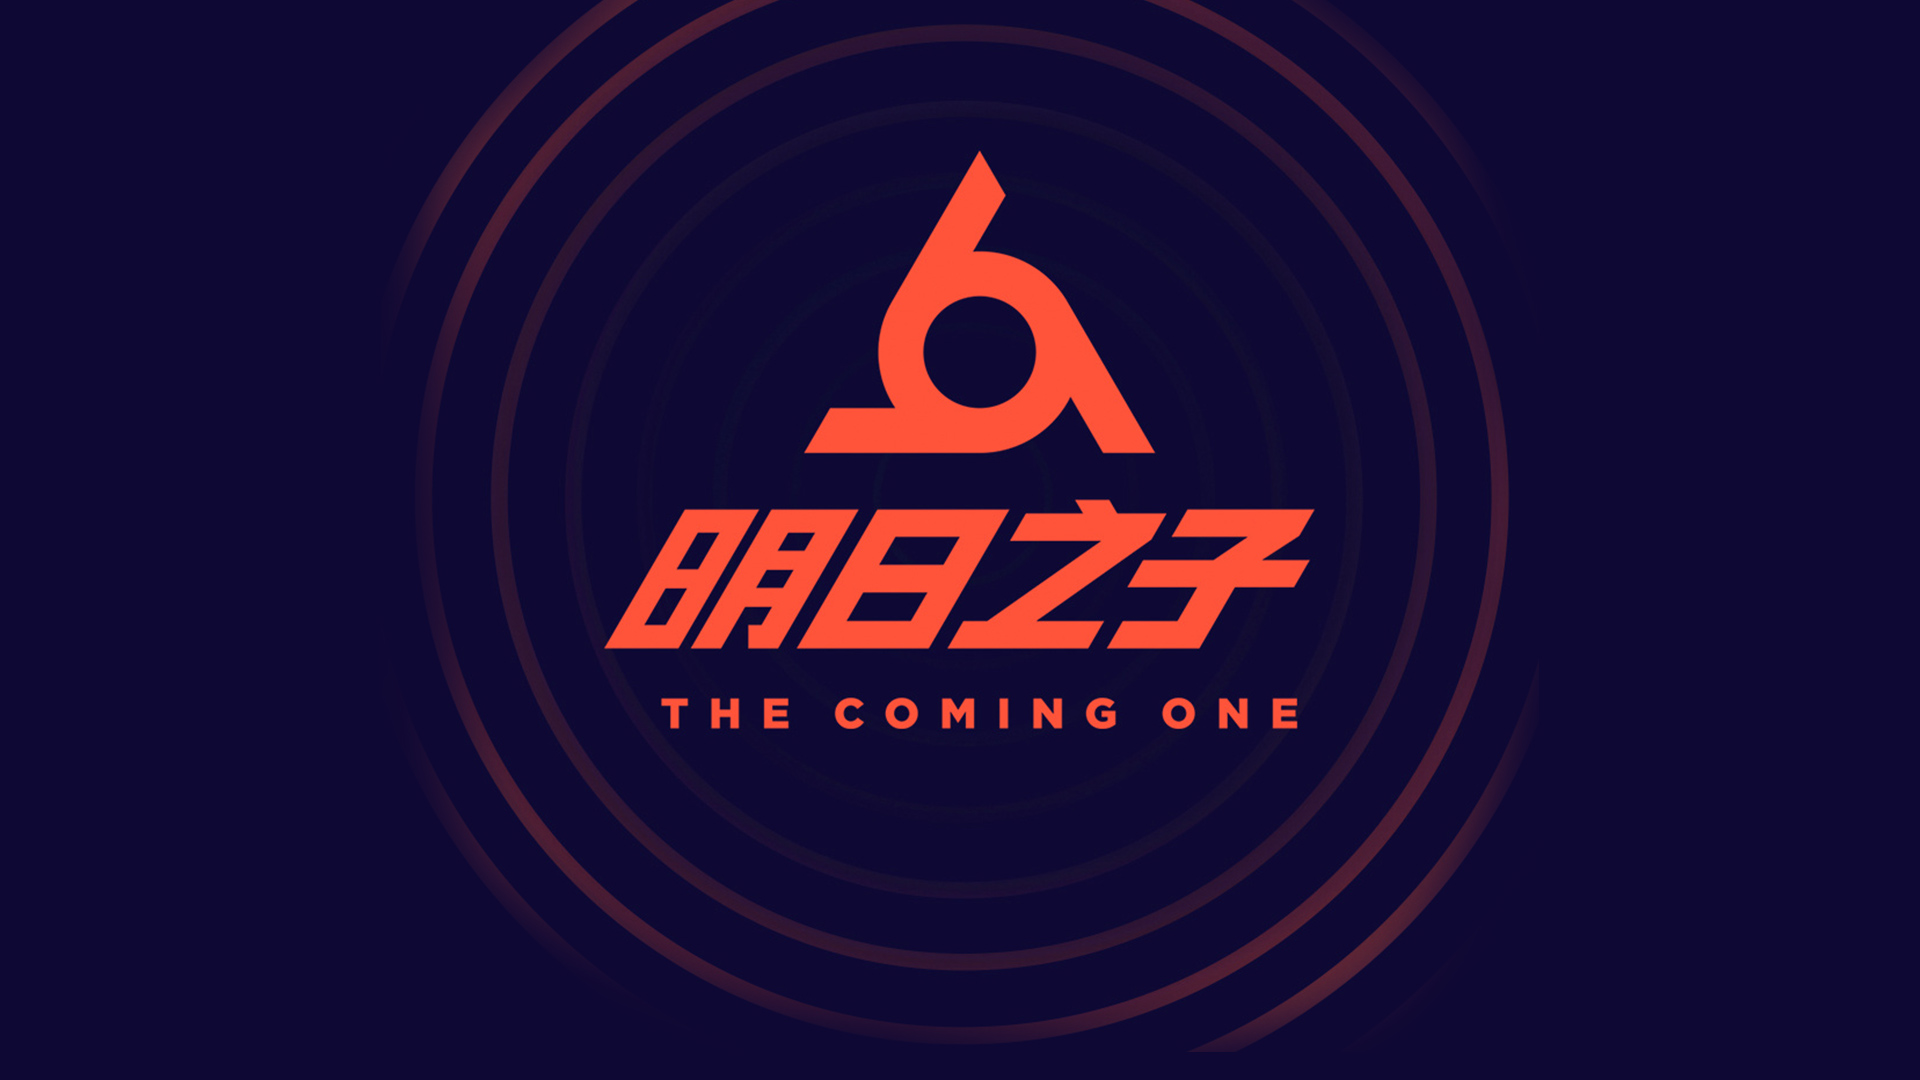 THE COMING ONE